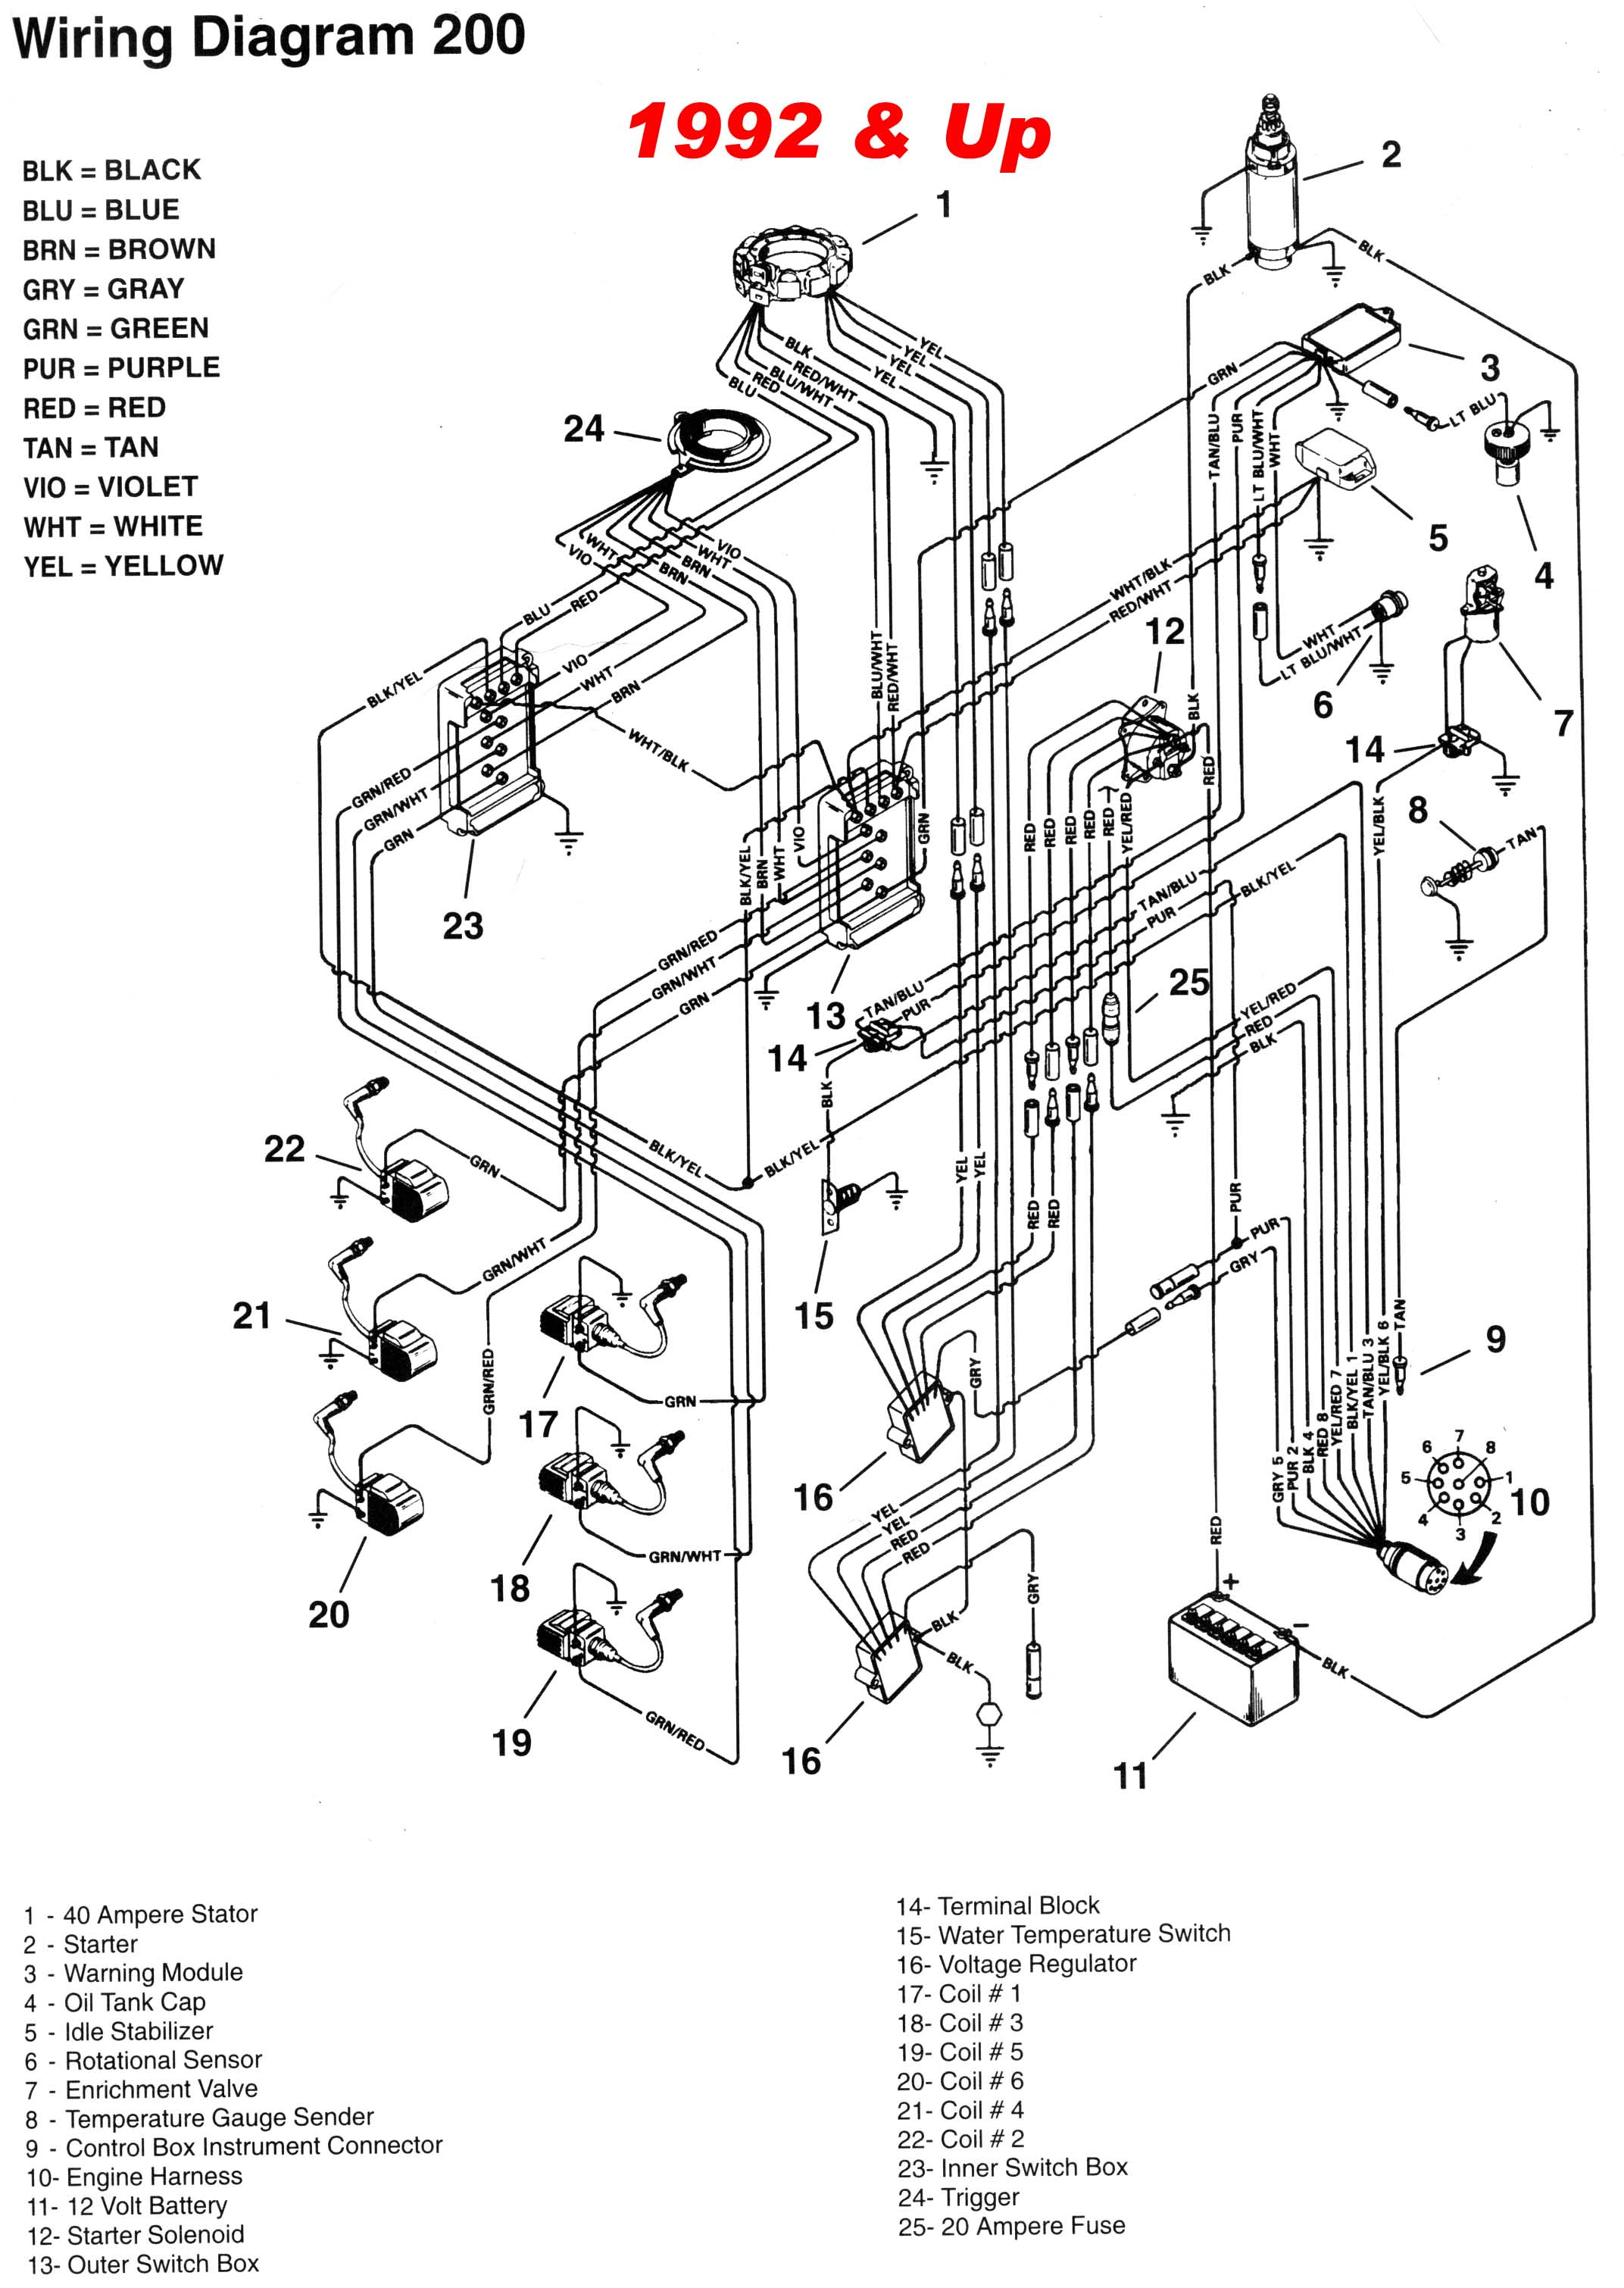 93 Club Car Wiring Diagram besides Flathead drawings electrical besides Wiring likewise Electrical System furthermore 1983 1988 Ford Bronco Ii Start Ignition. on 85 ford starter solenoid wiring diagram